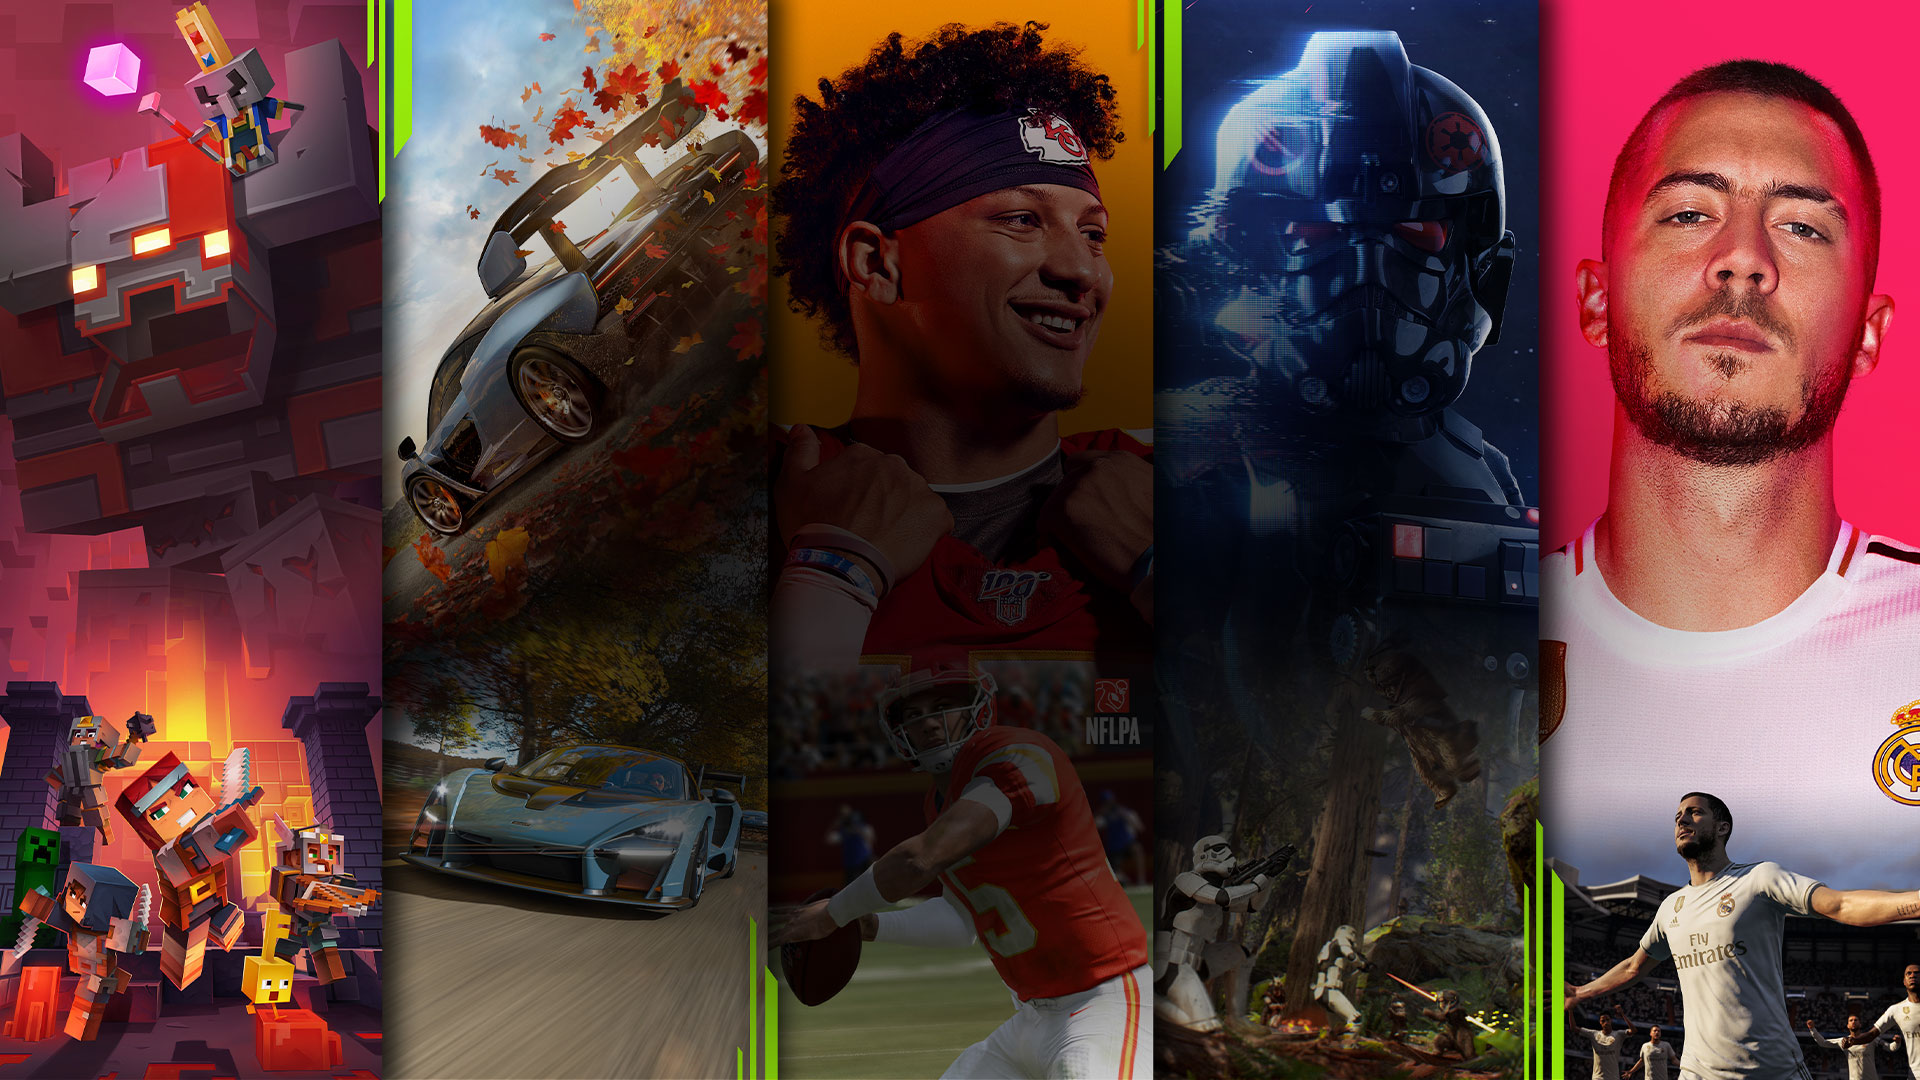 Xbox Game Pass, mosaico de personajes de EA Play y Xbox Game Pass